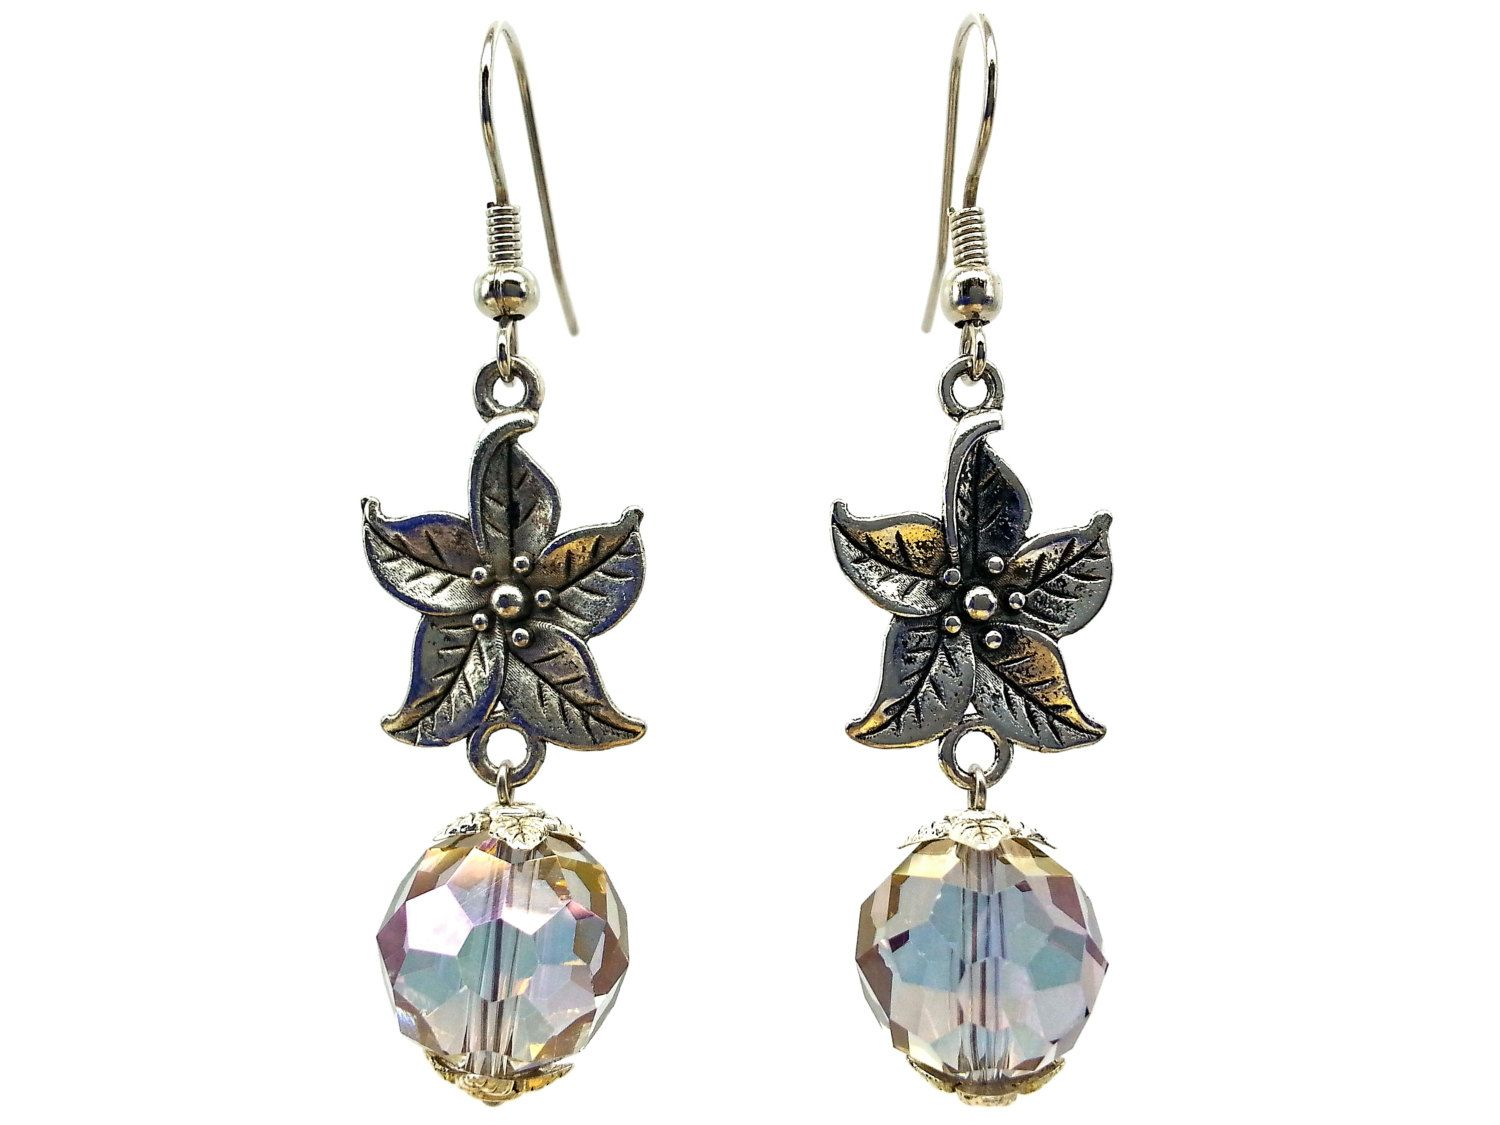 Use coupon 10OFFTLBCJ for 10%OFF on $10.00 or more  Use coupon 20OFFTLBCJ for 20%OFF on $20.00 or more ---- Free Shipping Jewelry SALE Handmade Beaded Earrings Elegant Antique Silver Faceted Iridescent Crystal Dangle Earrings (Item number LBE003) by TheLoveBabyCompany on Etsy